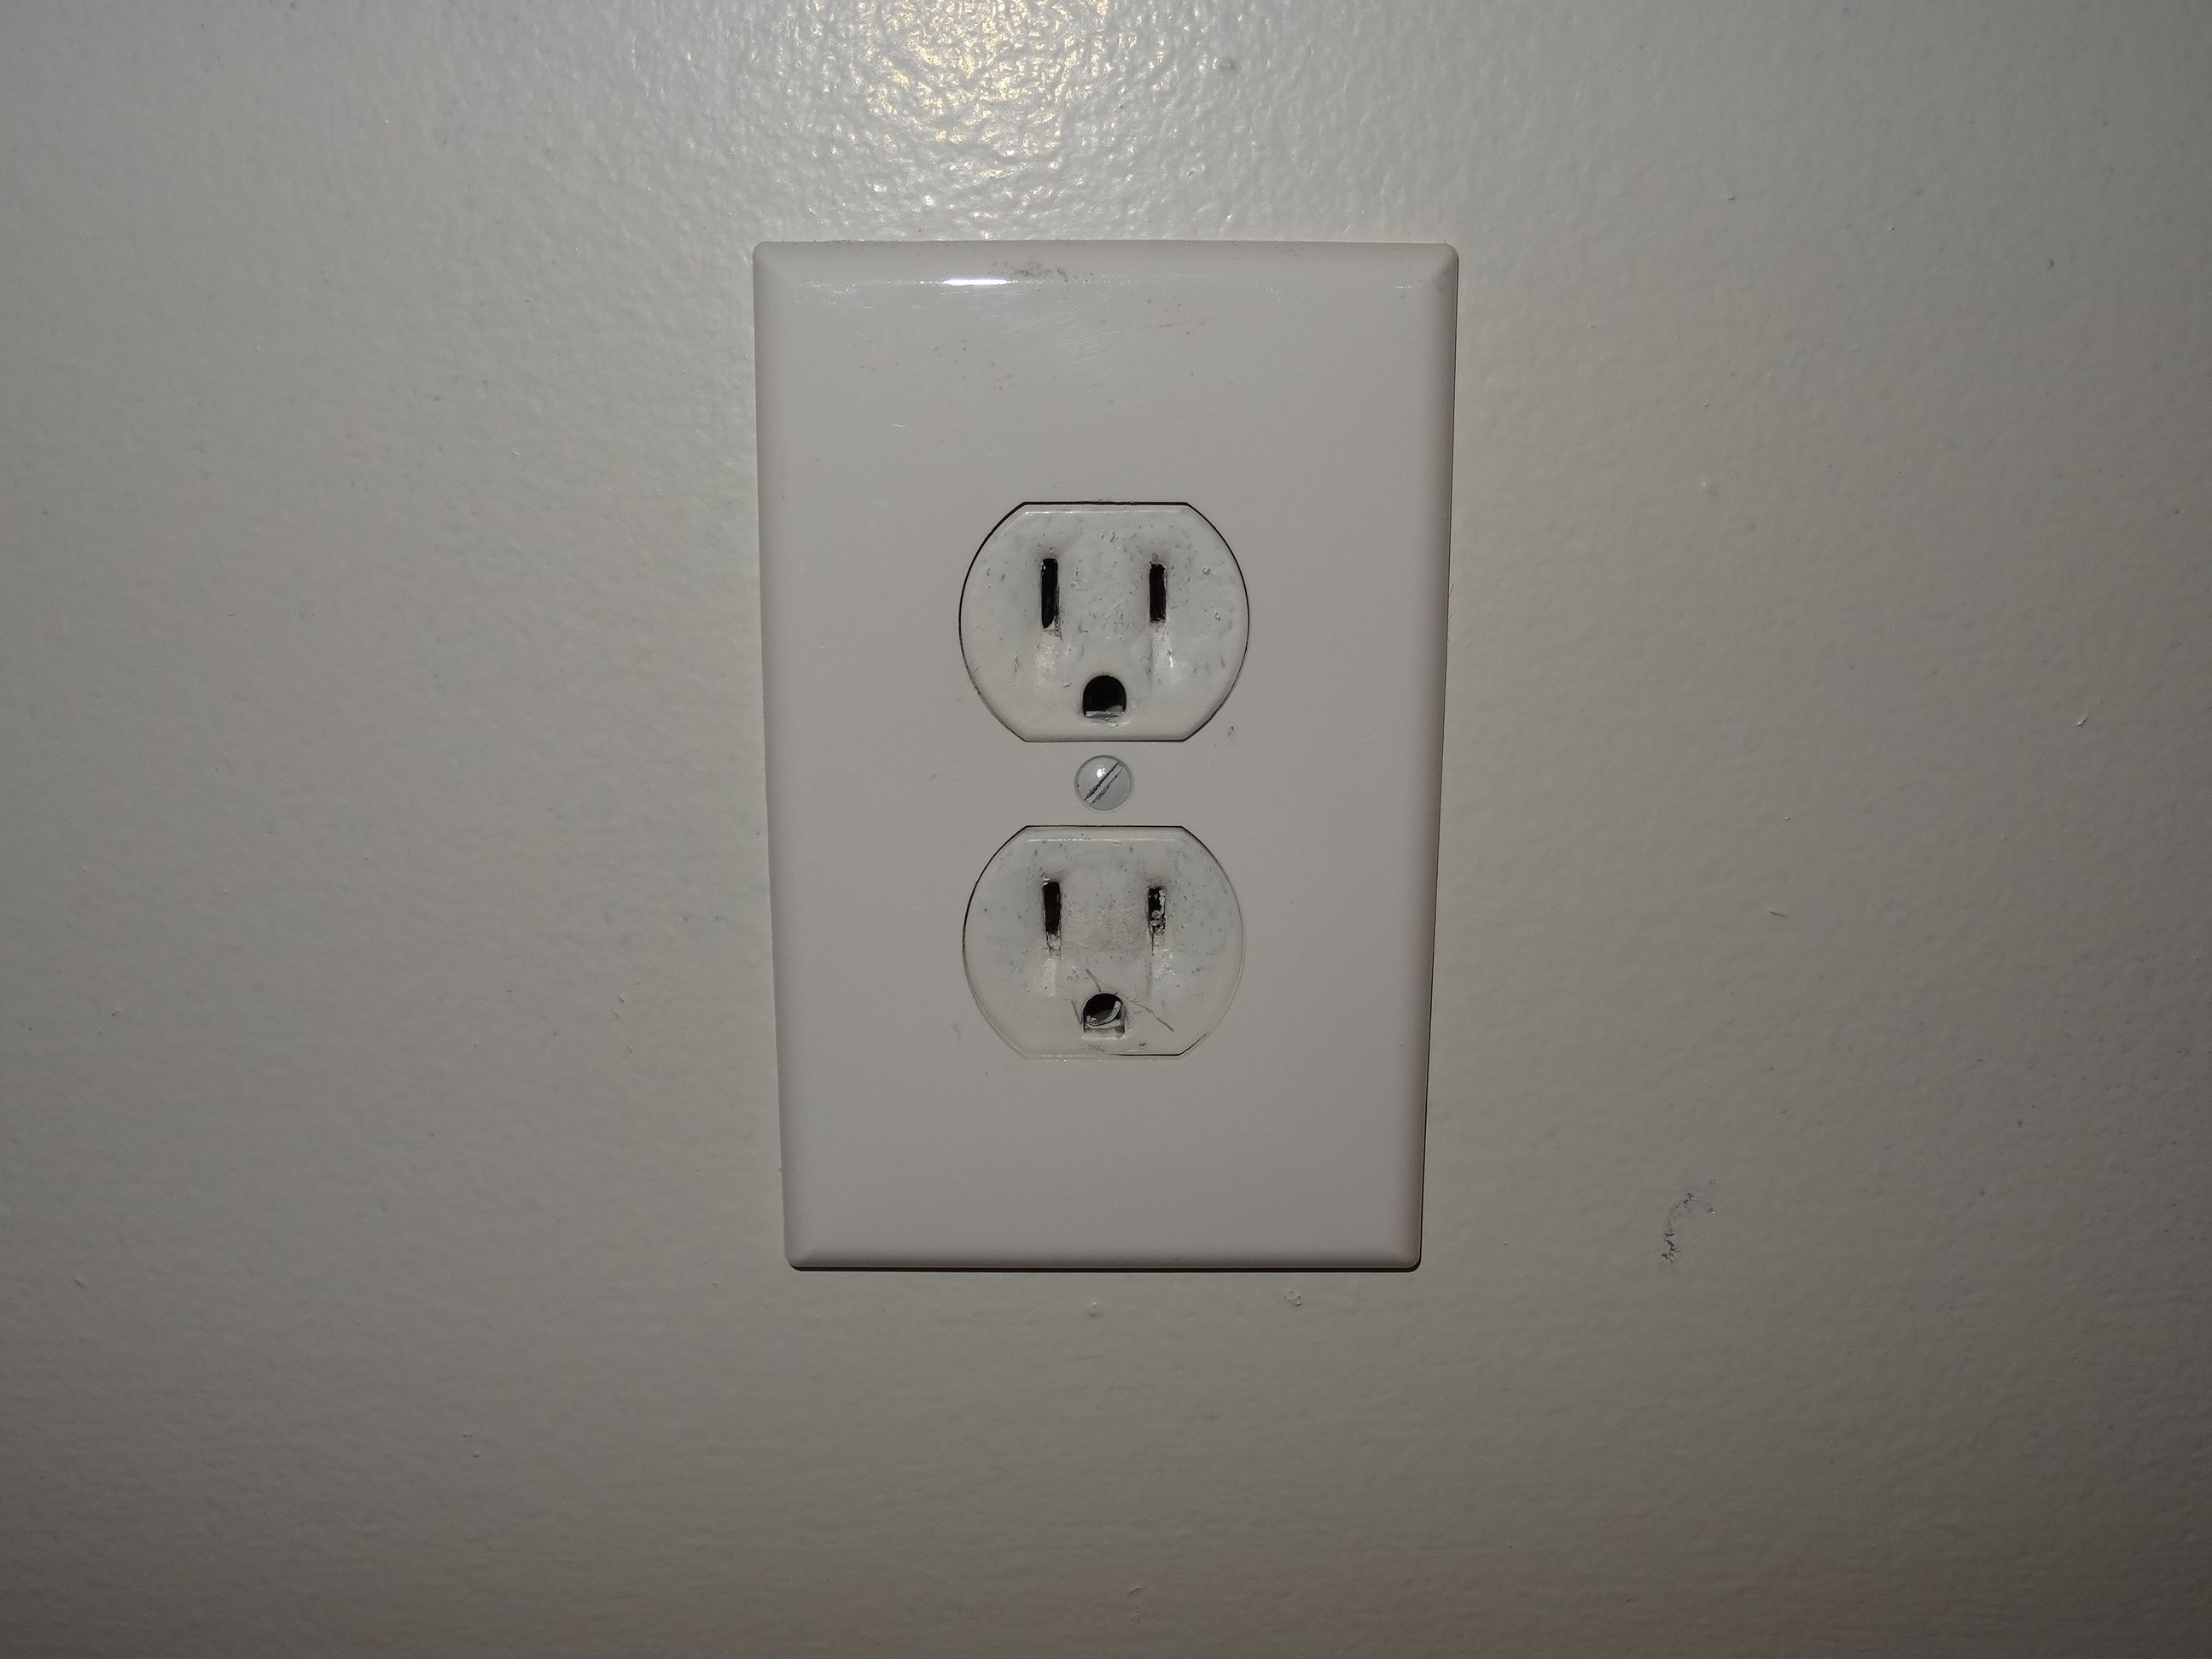 Painted Over Electrical Outlet Electrical Outlets Electricity Electrical System